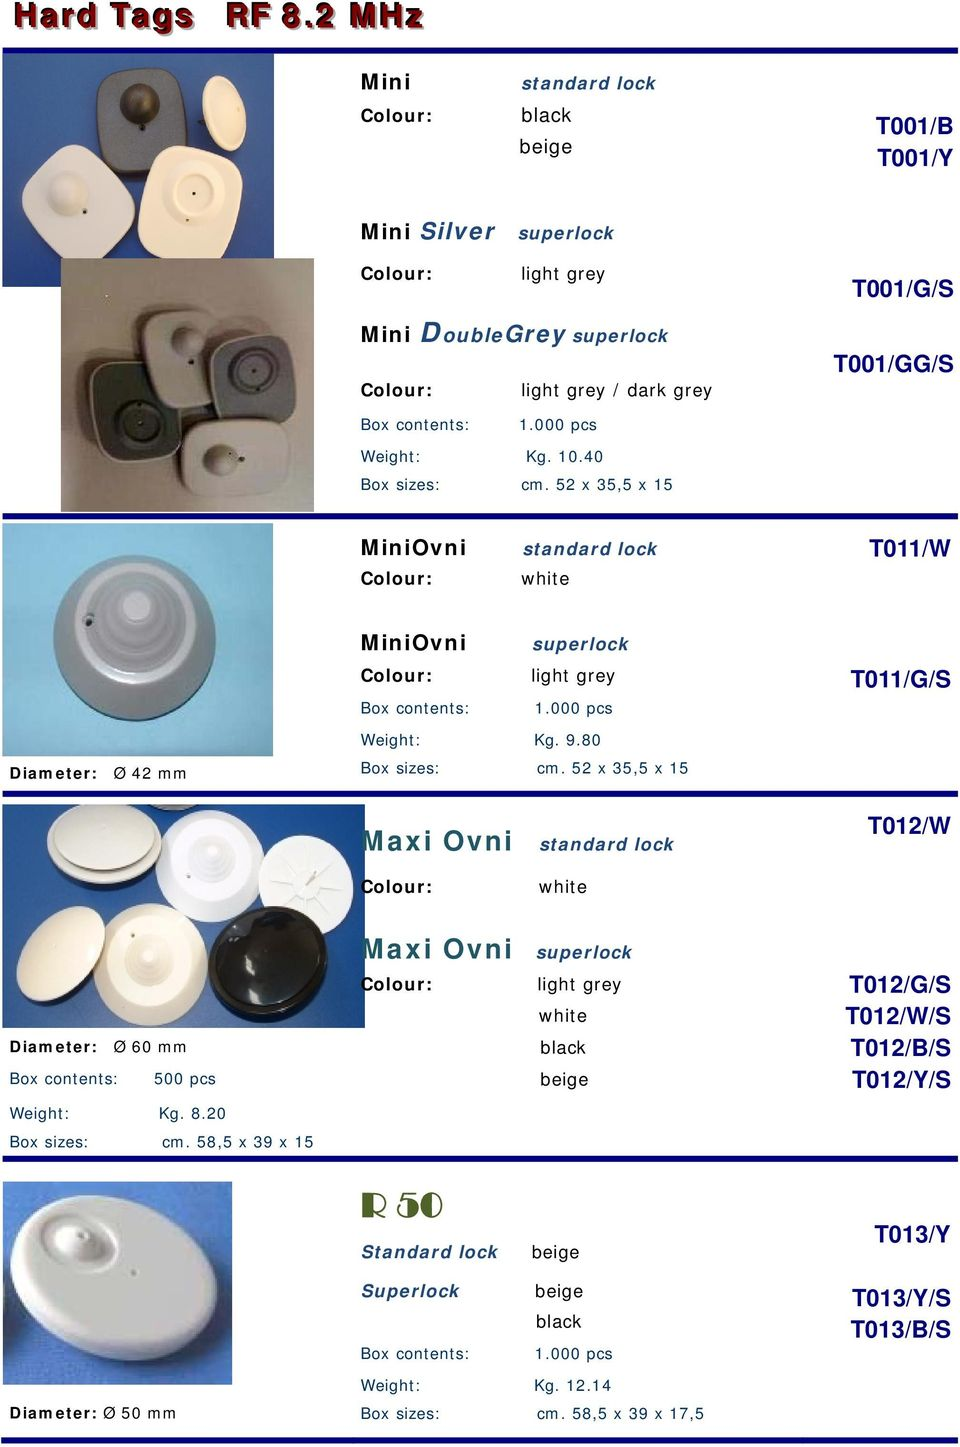 80 Box sizes: cm. 52 x 35,5 x 15 Maxi Ovni standard lock T012/W white Diameter: Ø 60 mm 500 pcs Weight: Kg. 8.20 Box sizes: cm.